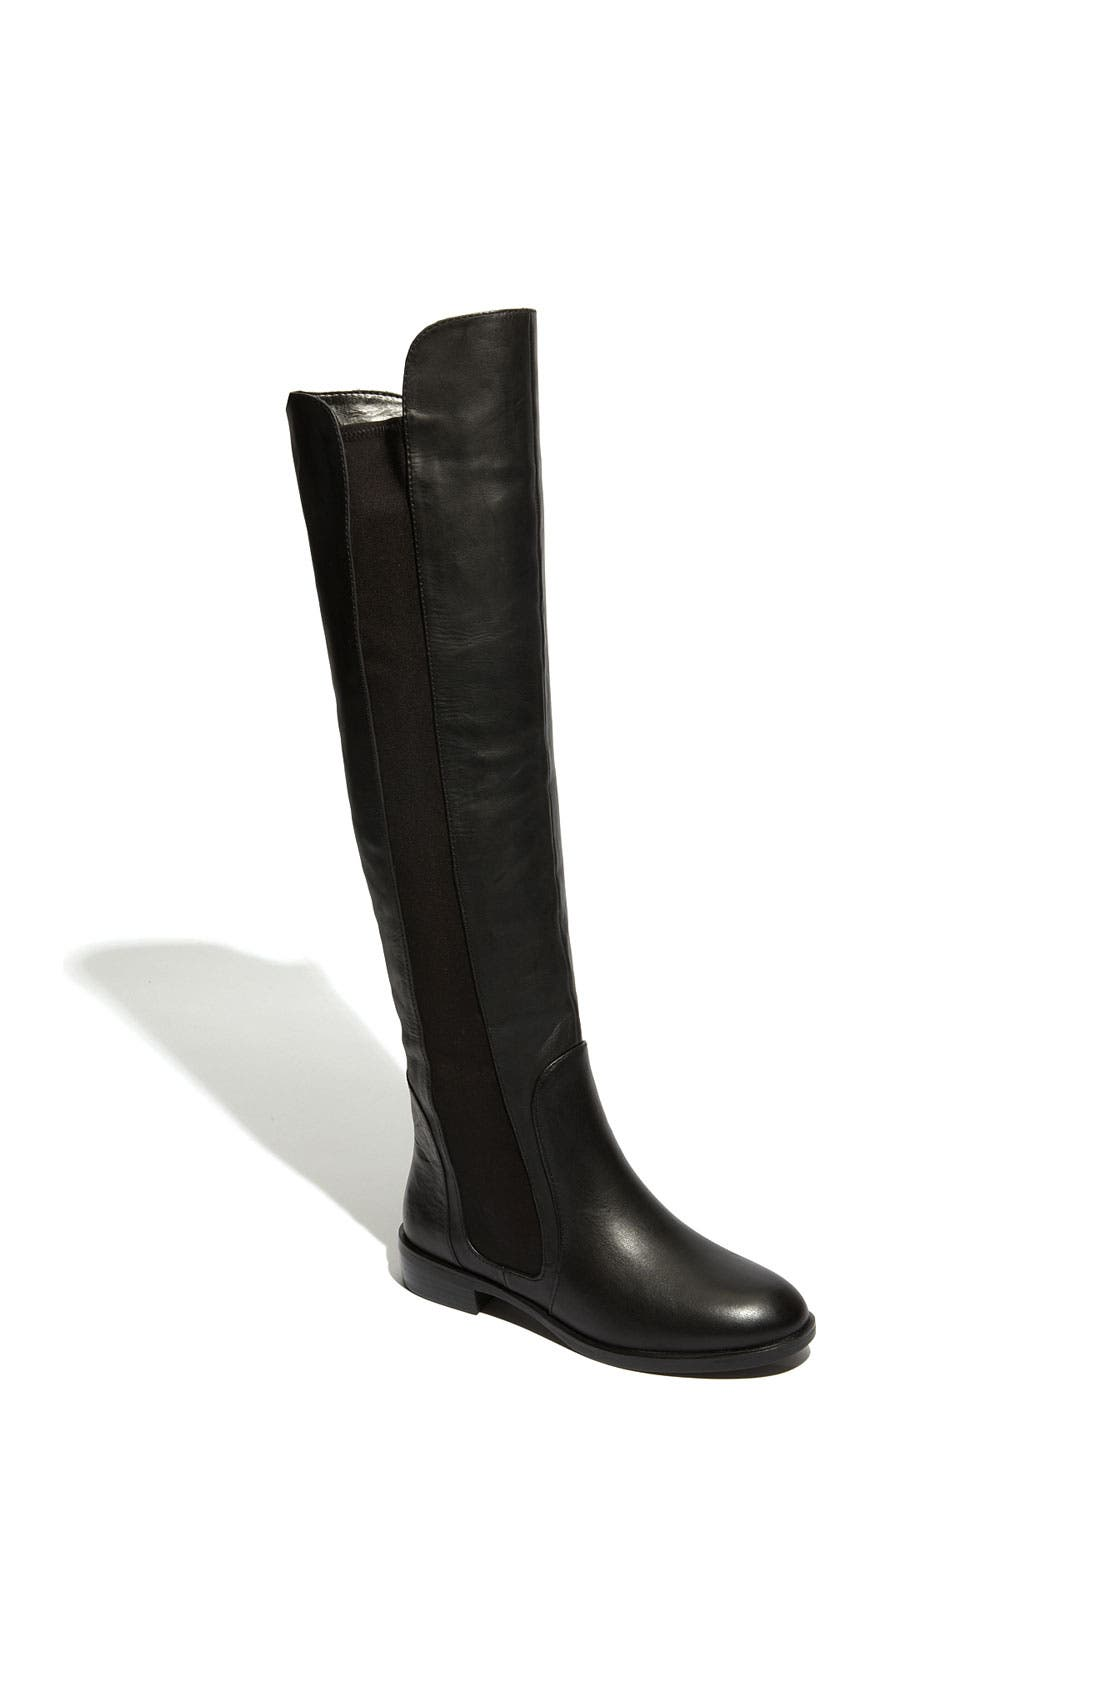 Main Image - REPORT 'Basta' Over the Knee Boot